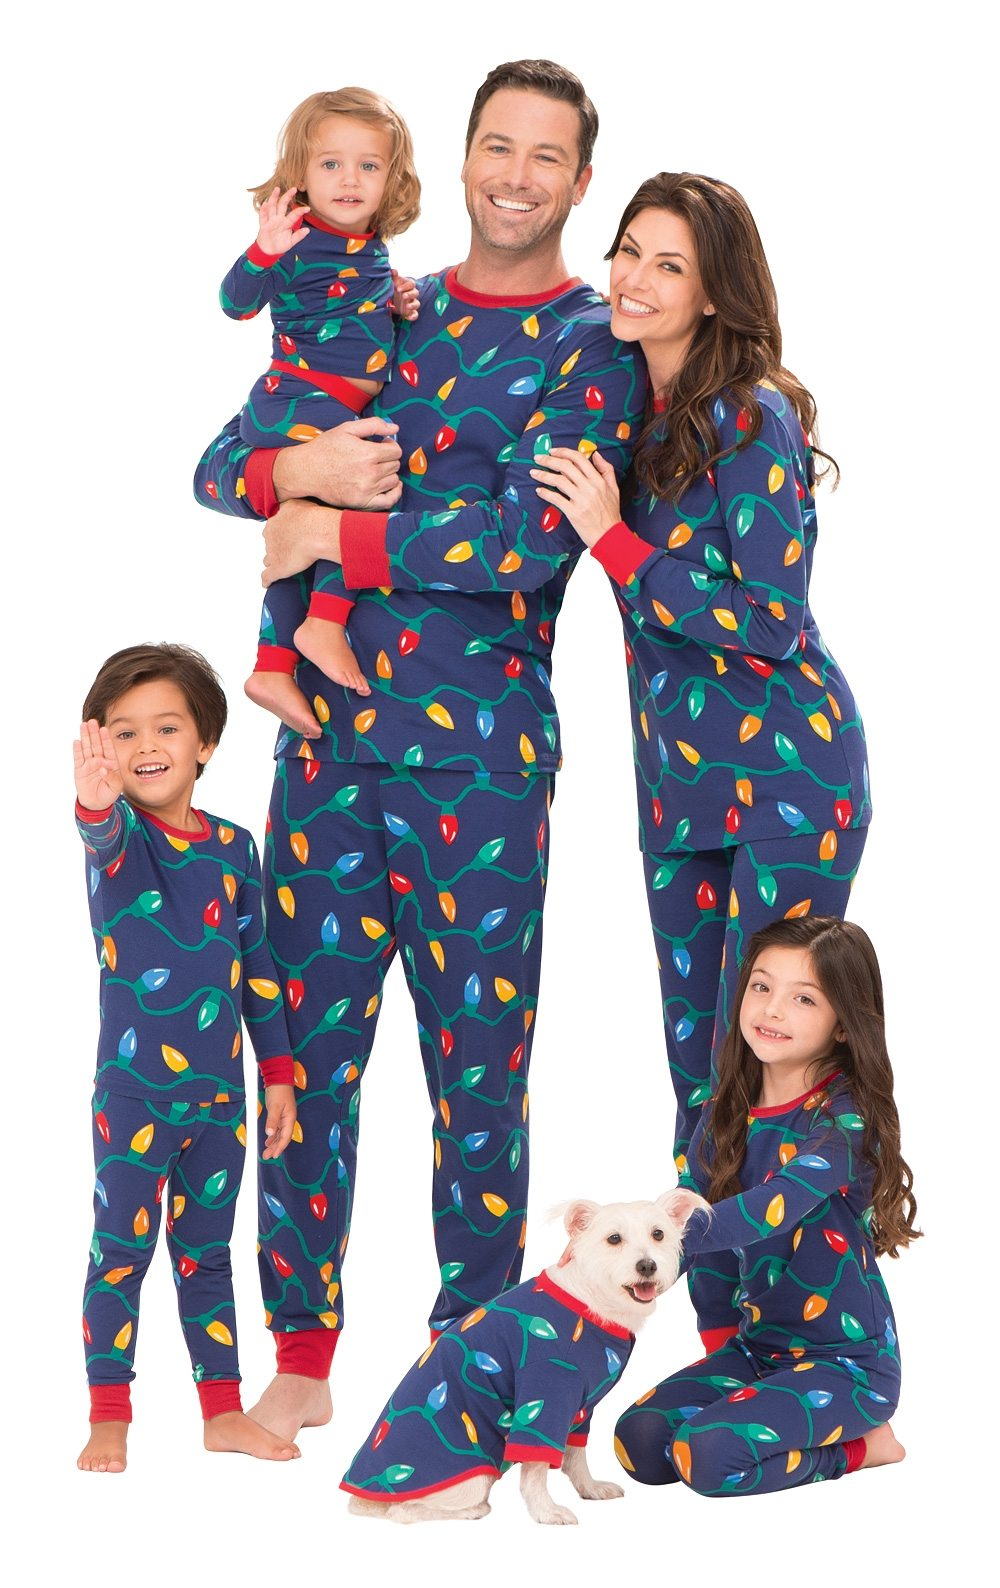 Matching Family Pajamas For The Holidays - Simplemost bb5f78b17